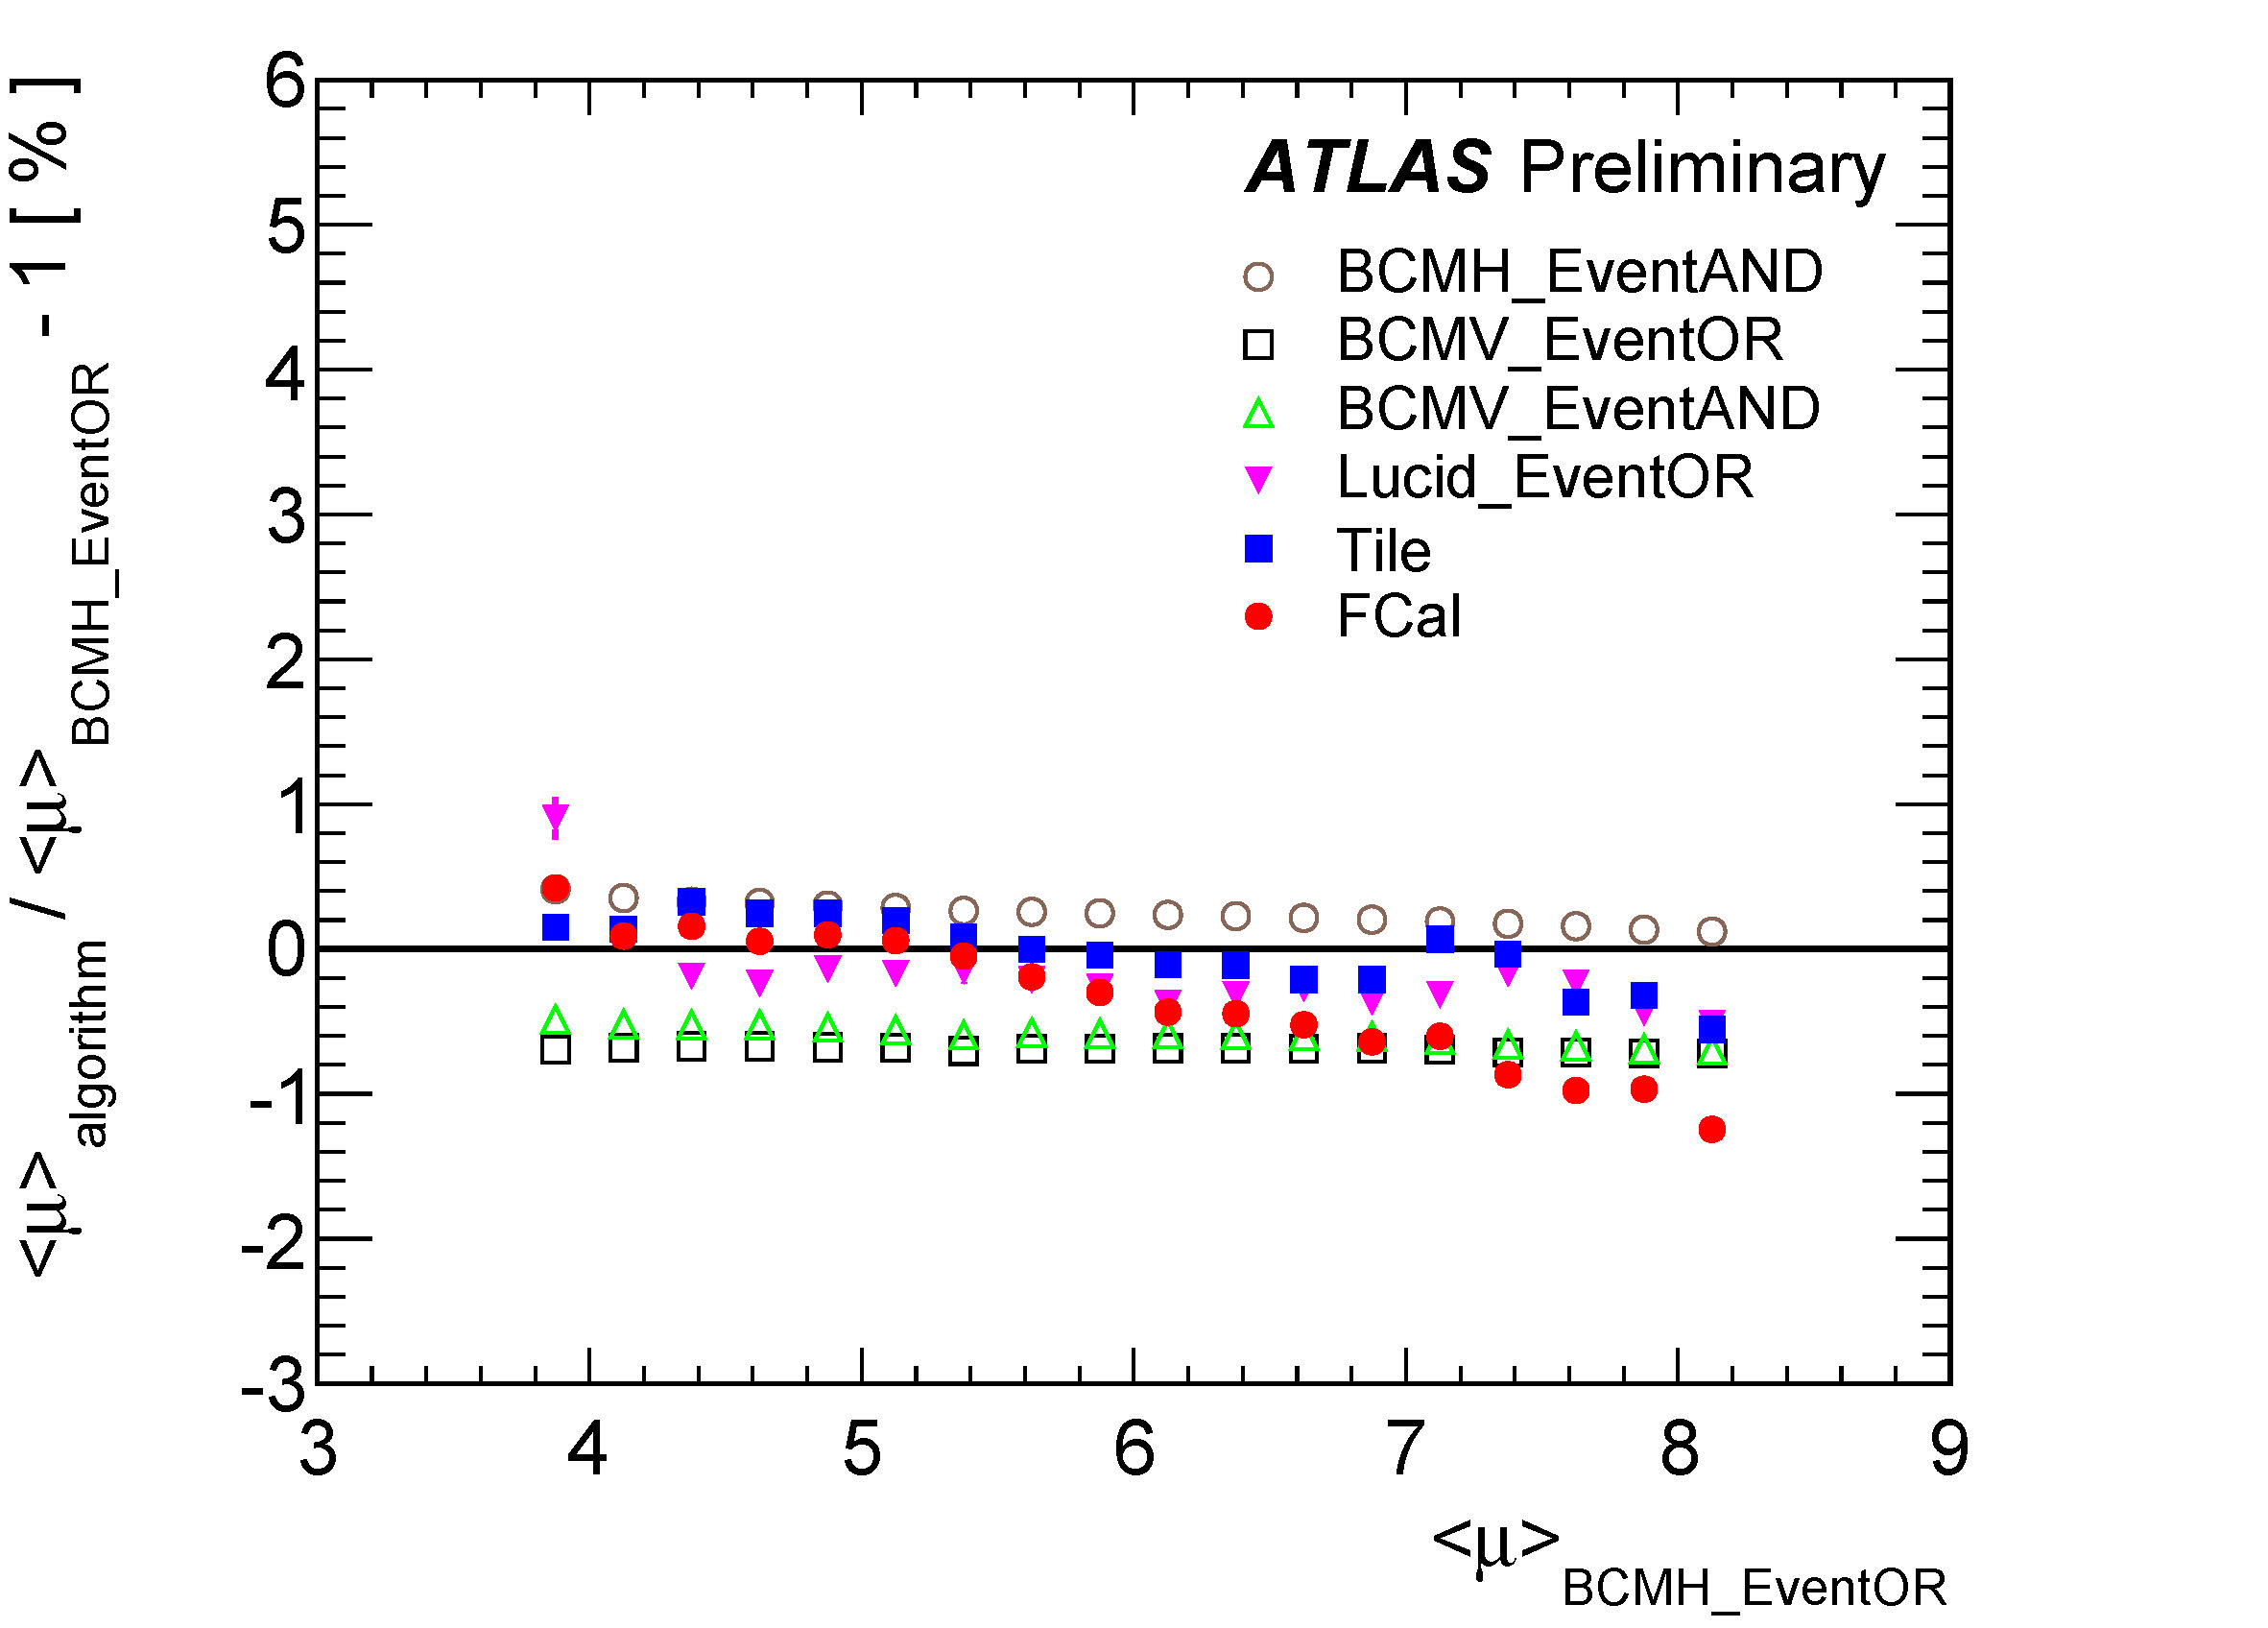 https://atlas.web.cern.ch/Atlas/GROUPS/DATAPREPARATION/PublicPlots/2011/Luminosity/muConsistency.jpg